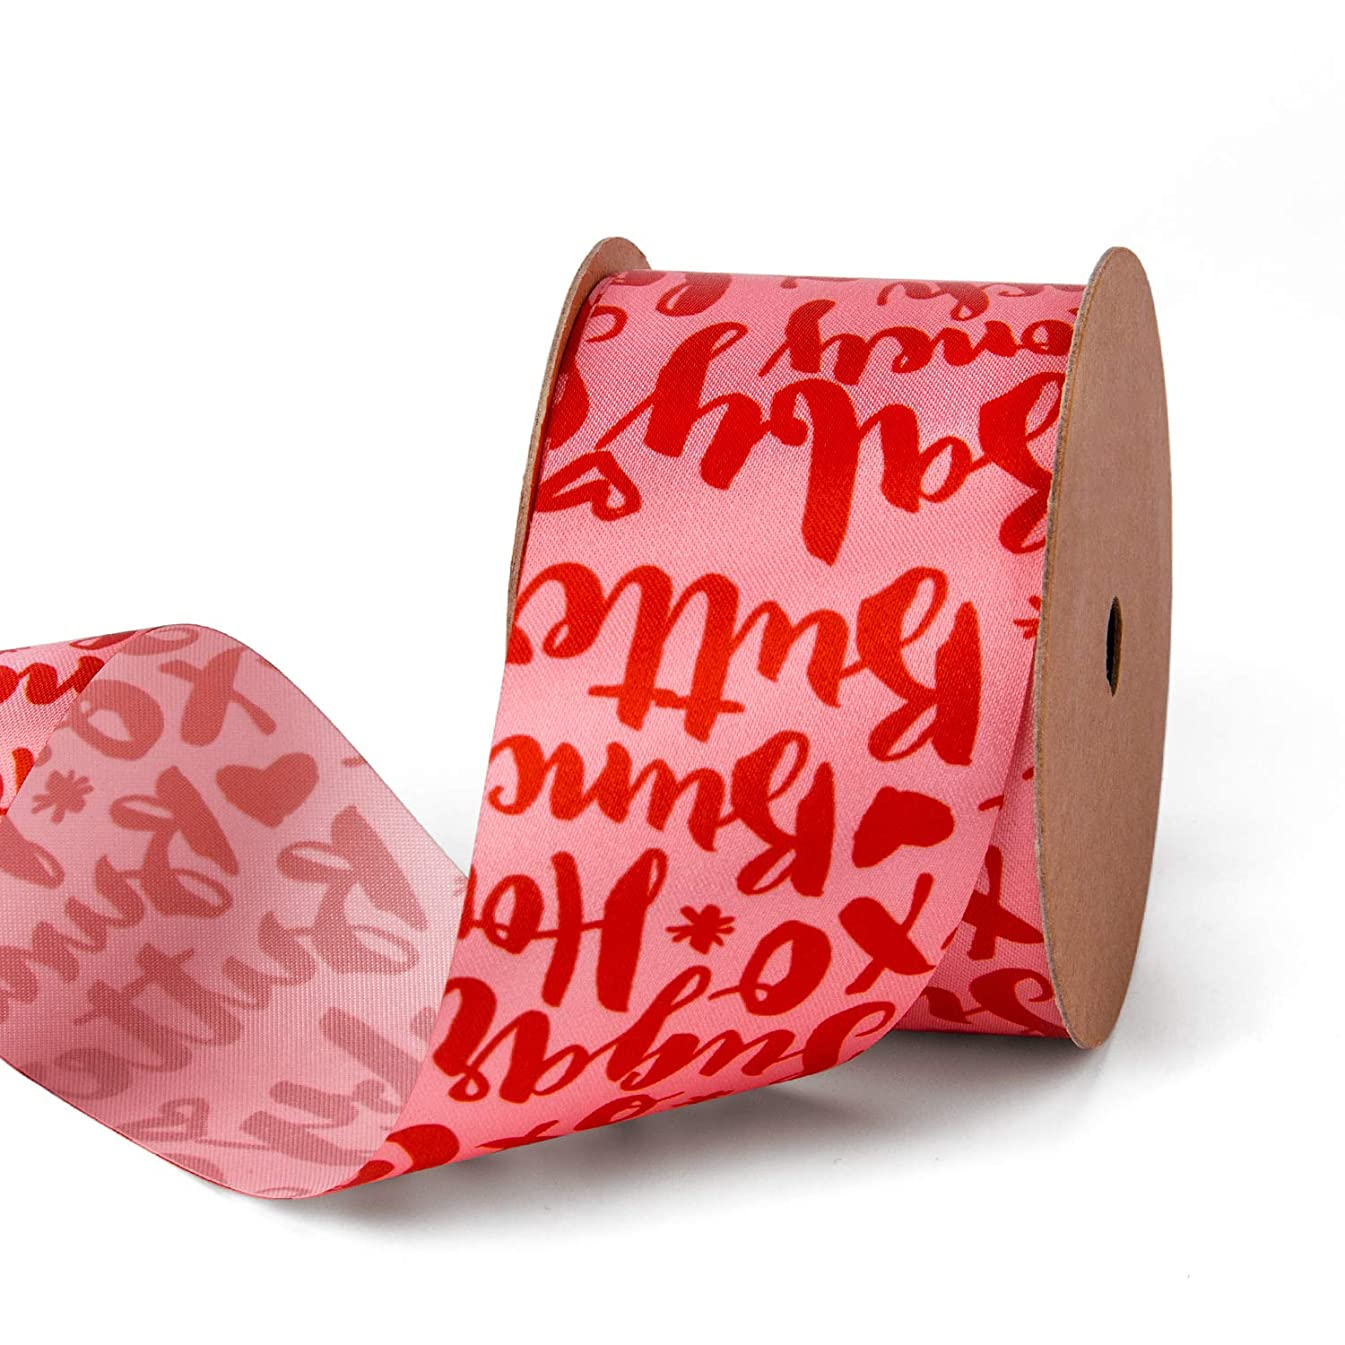 LaRibbons 1 Inch Red Valentine's Day Ribbon - Sweet Letters Printed for Decoration, Craft, Gift Wrappping - 10 Yard/Spool